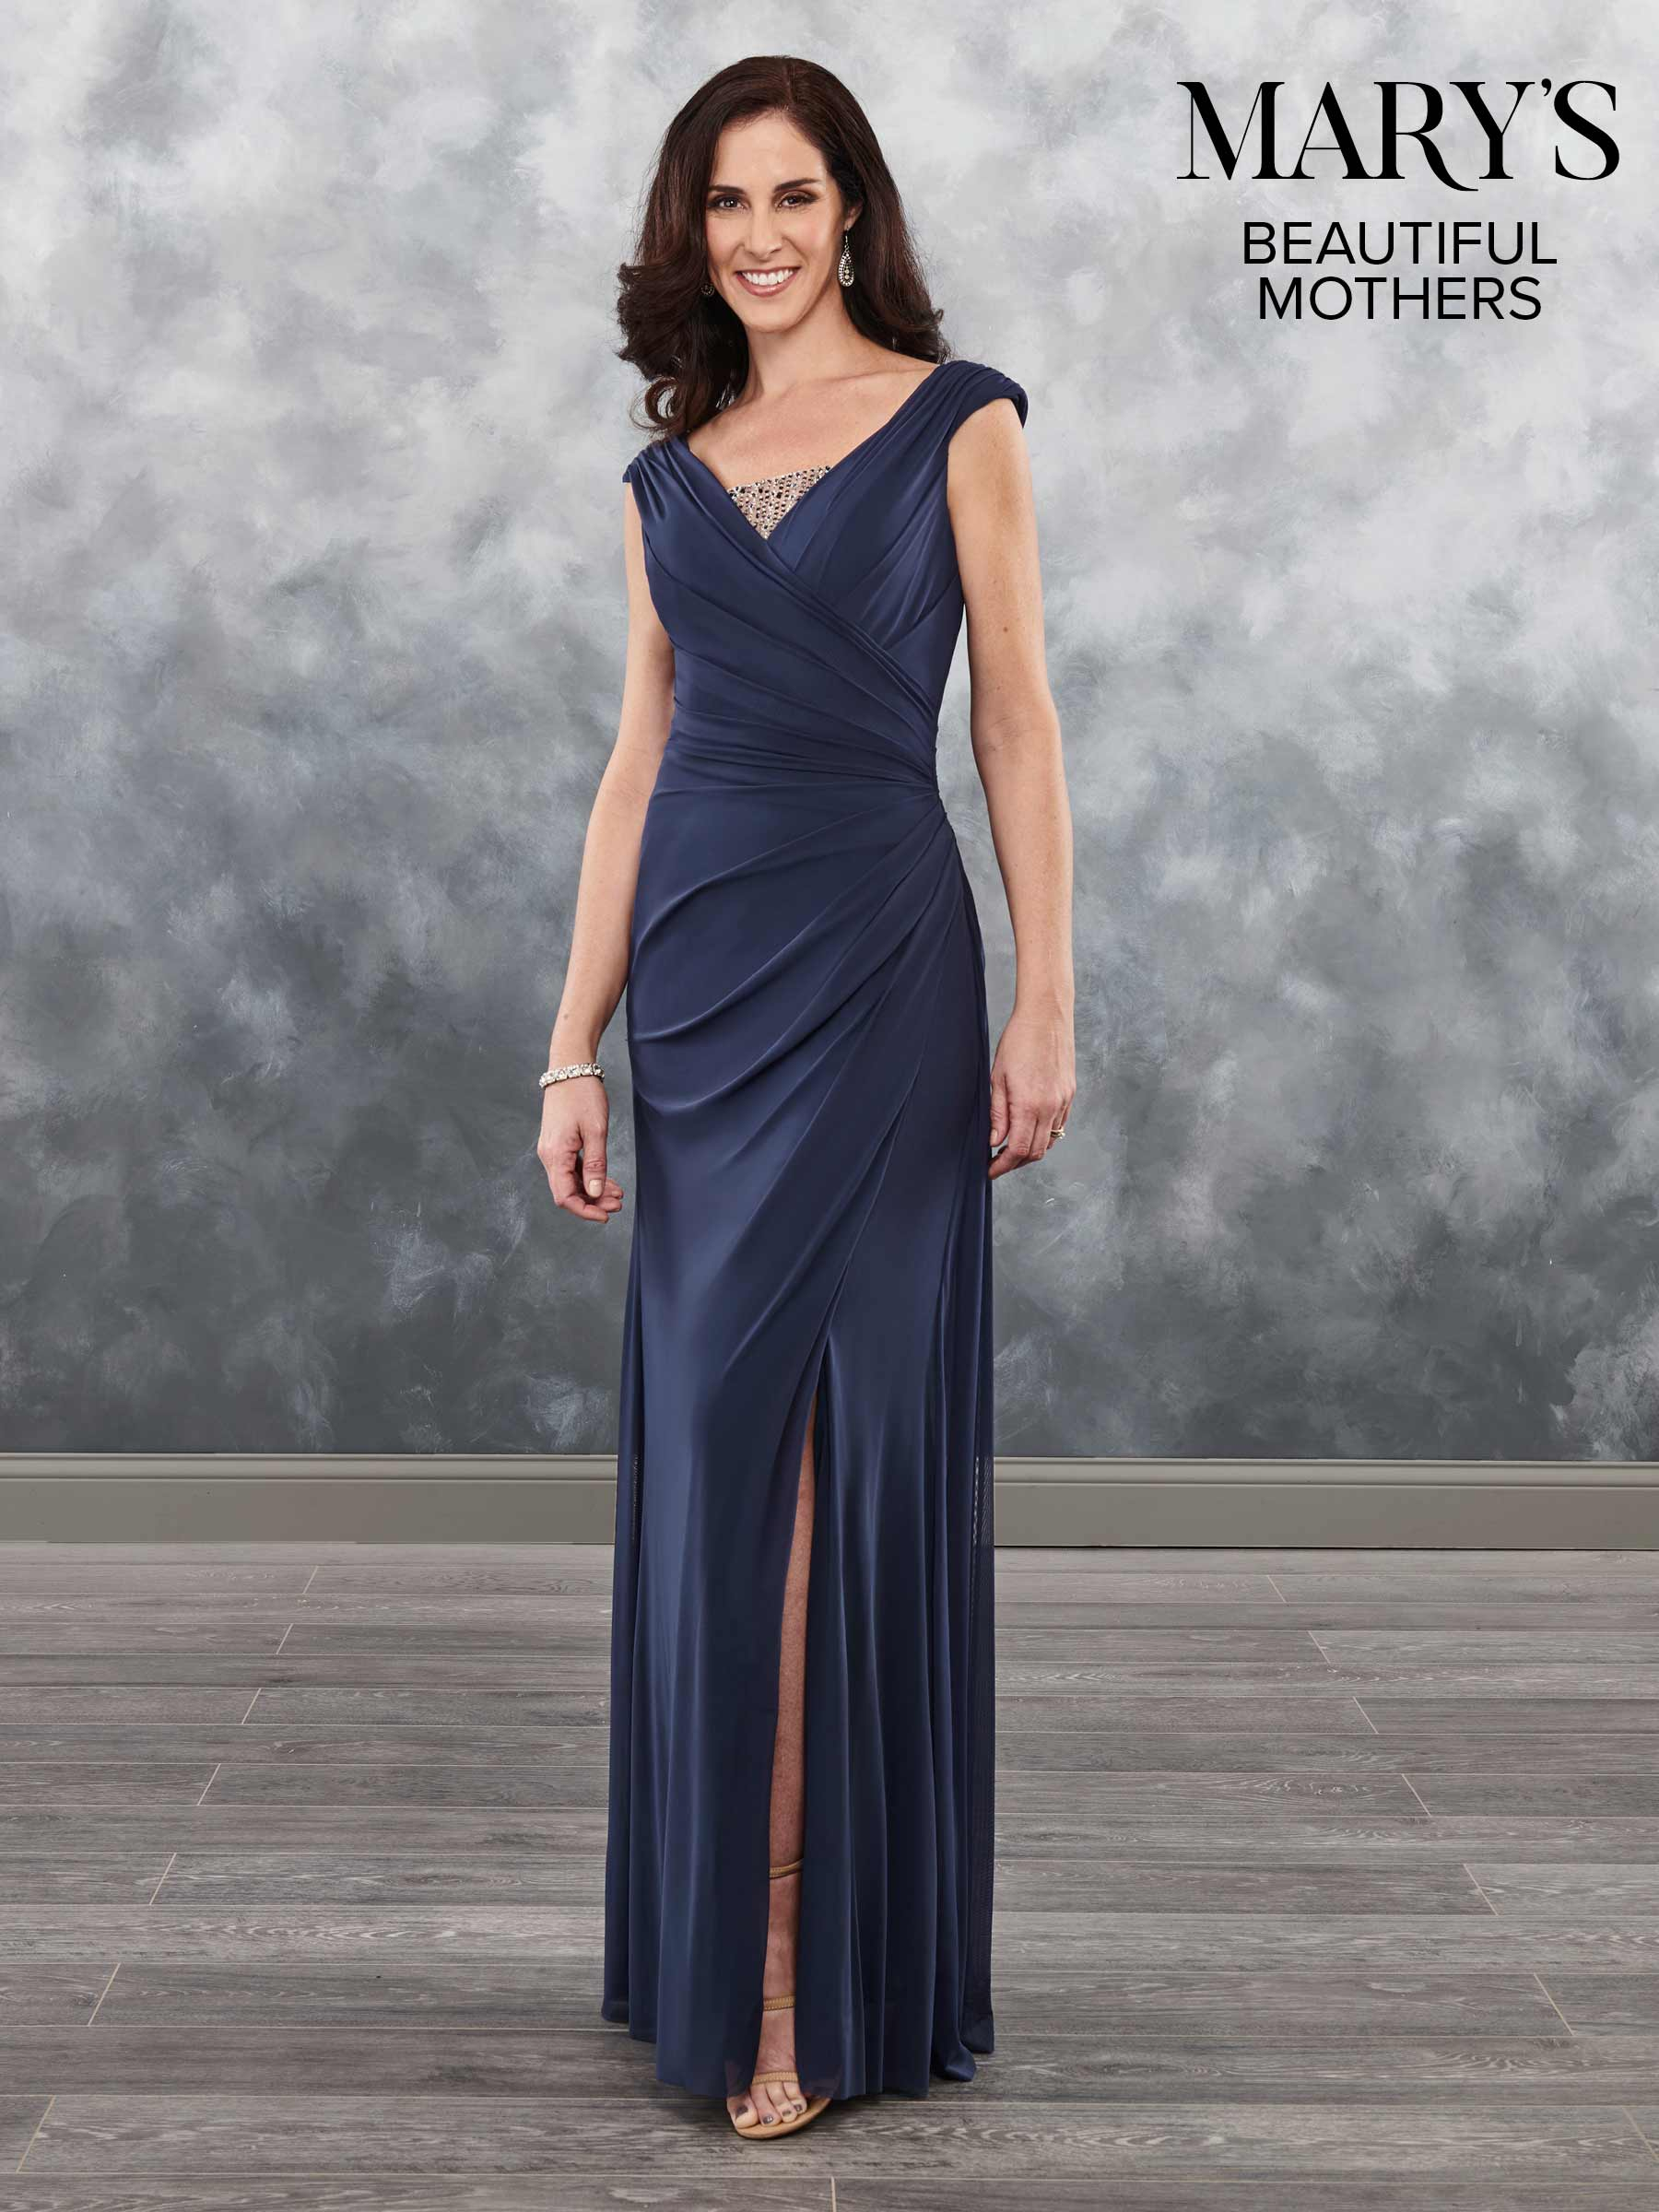 af2be667206 Beautiful Mothers By Marys Mother Of The Bride Dresses - Gomes Weine AG